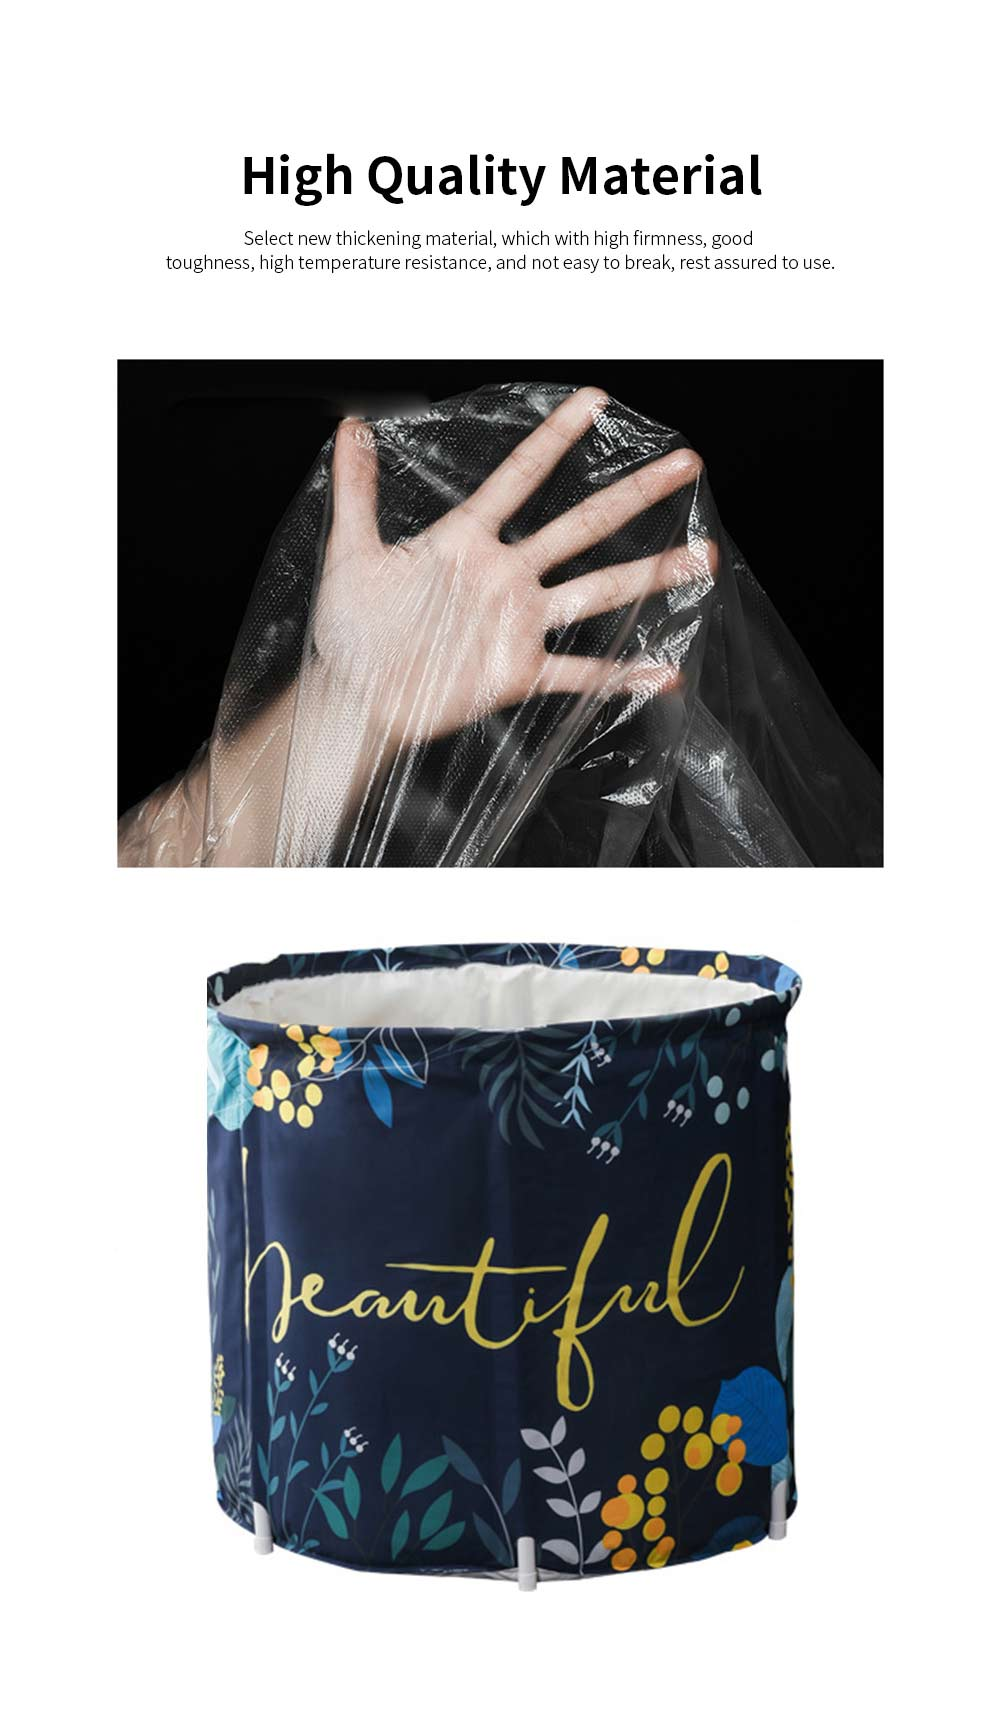 Foldable Home Bathtub Portable Thickened Body Bath Barrel with Good Insulation Performance and No Require of Inflate 1